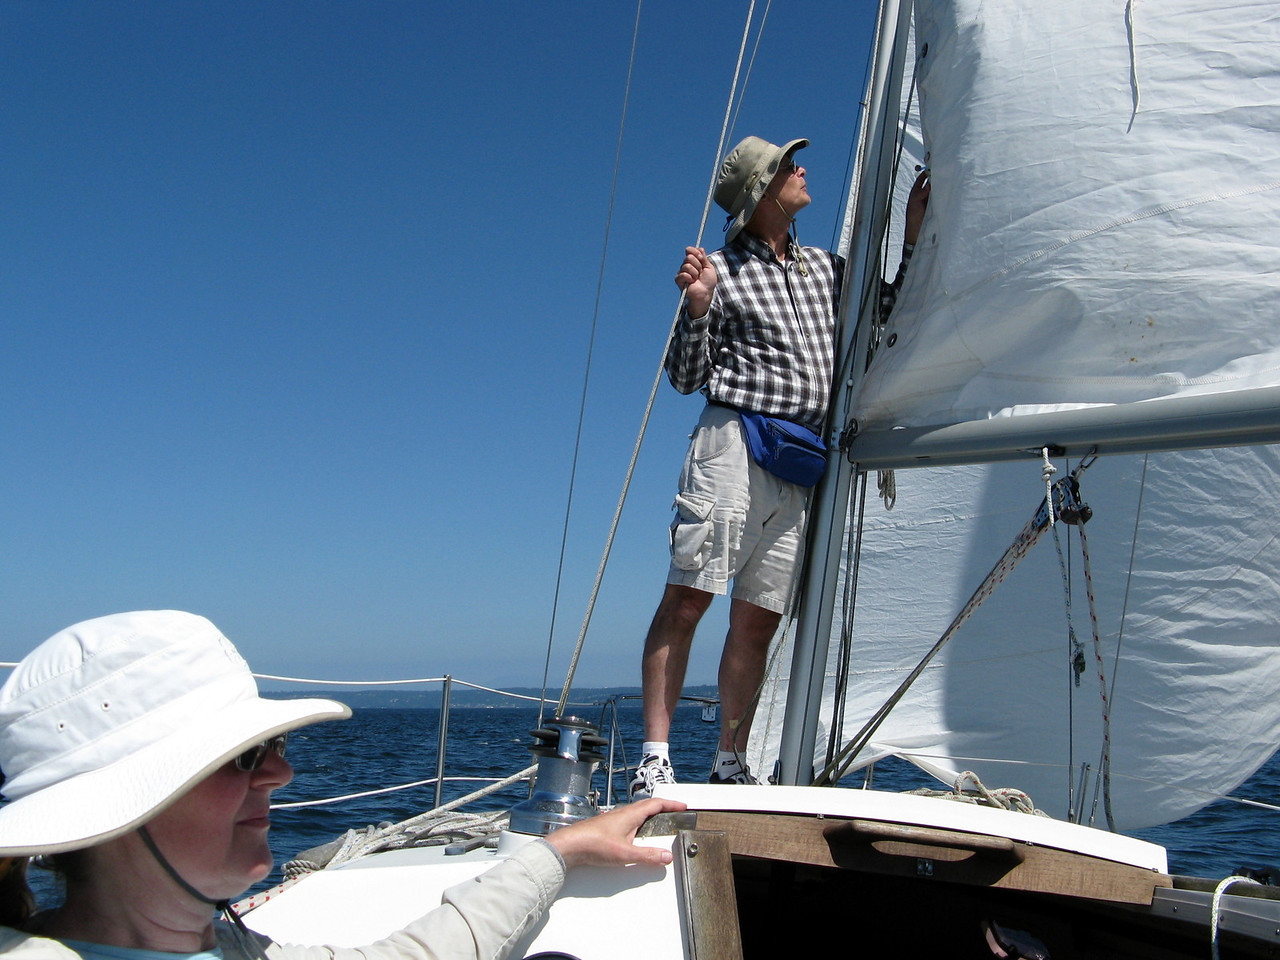 We headed back to Edmonds.   We had 10 to 15 knot winds on return trip.  Marc is standing at the mast and Mary Proudfoot  in the foreground.